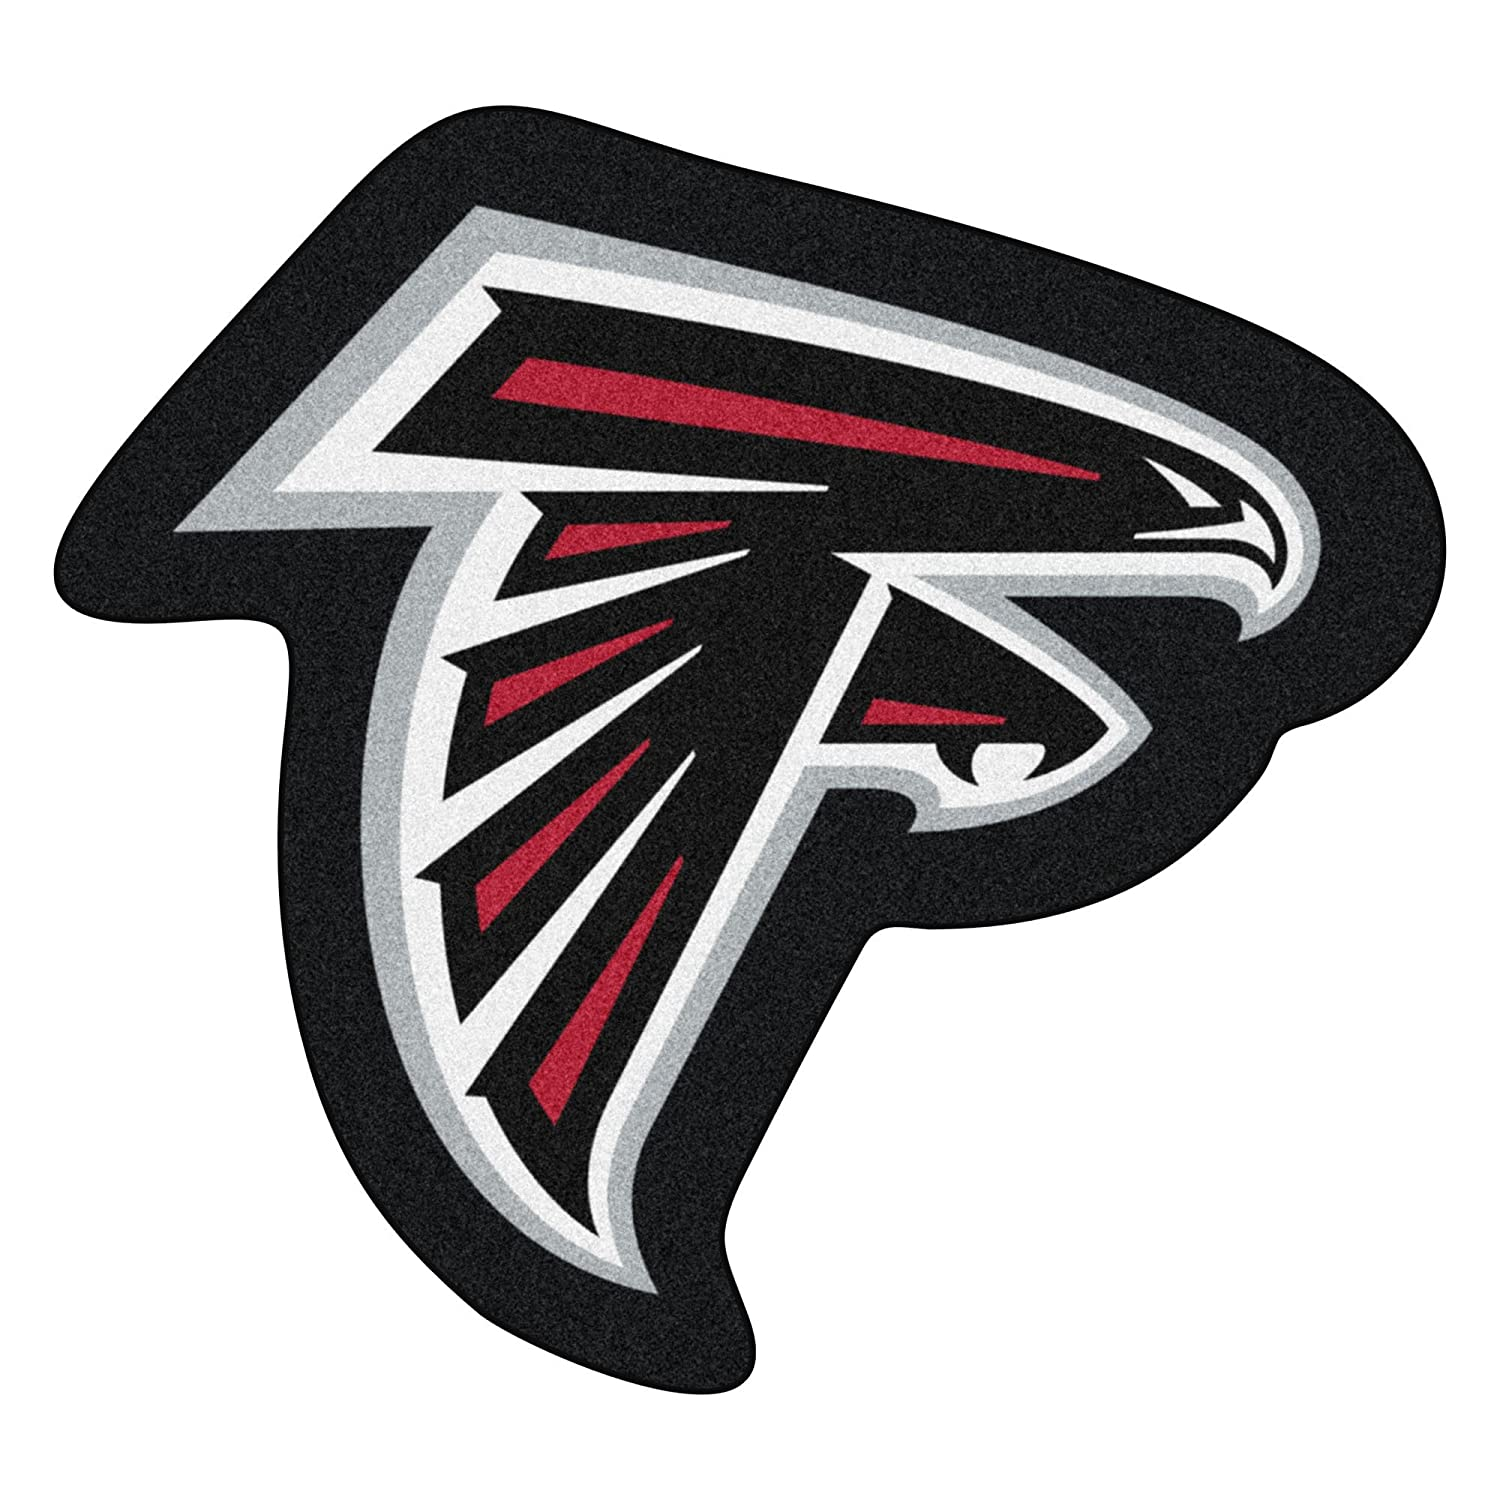 Fanmats 20961 NFL - Atlanta Falcons Mascot Mat, Team Color, 3' x 4' 3' x 4'